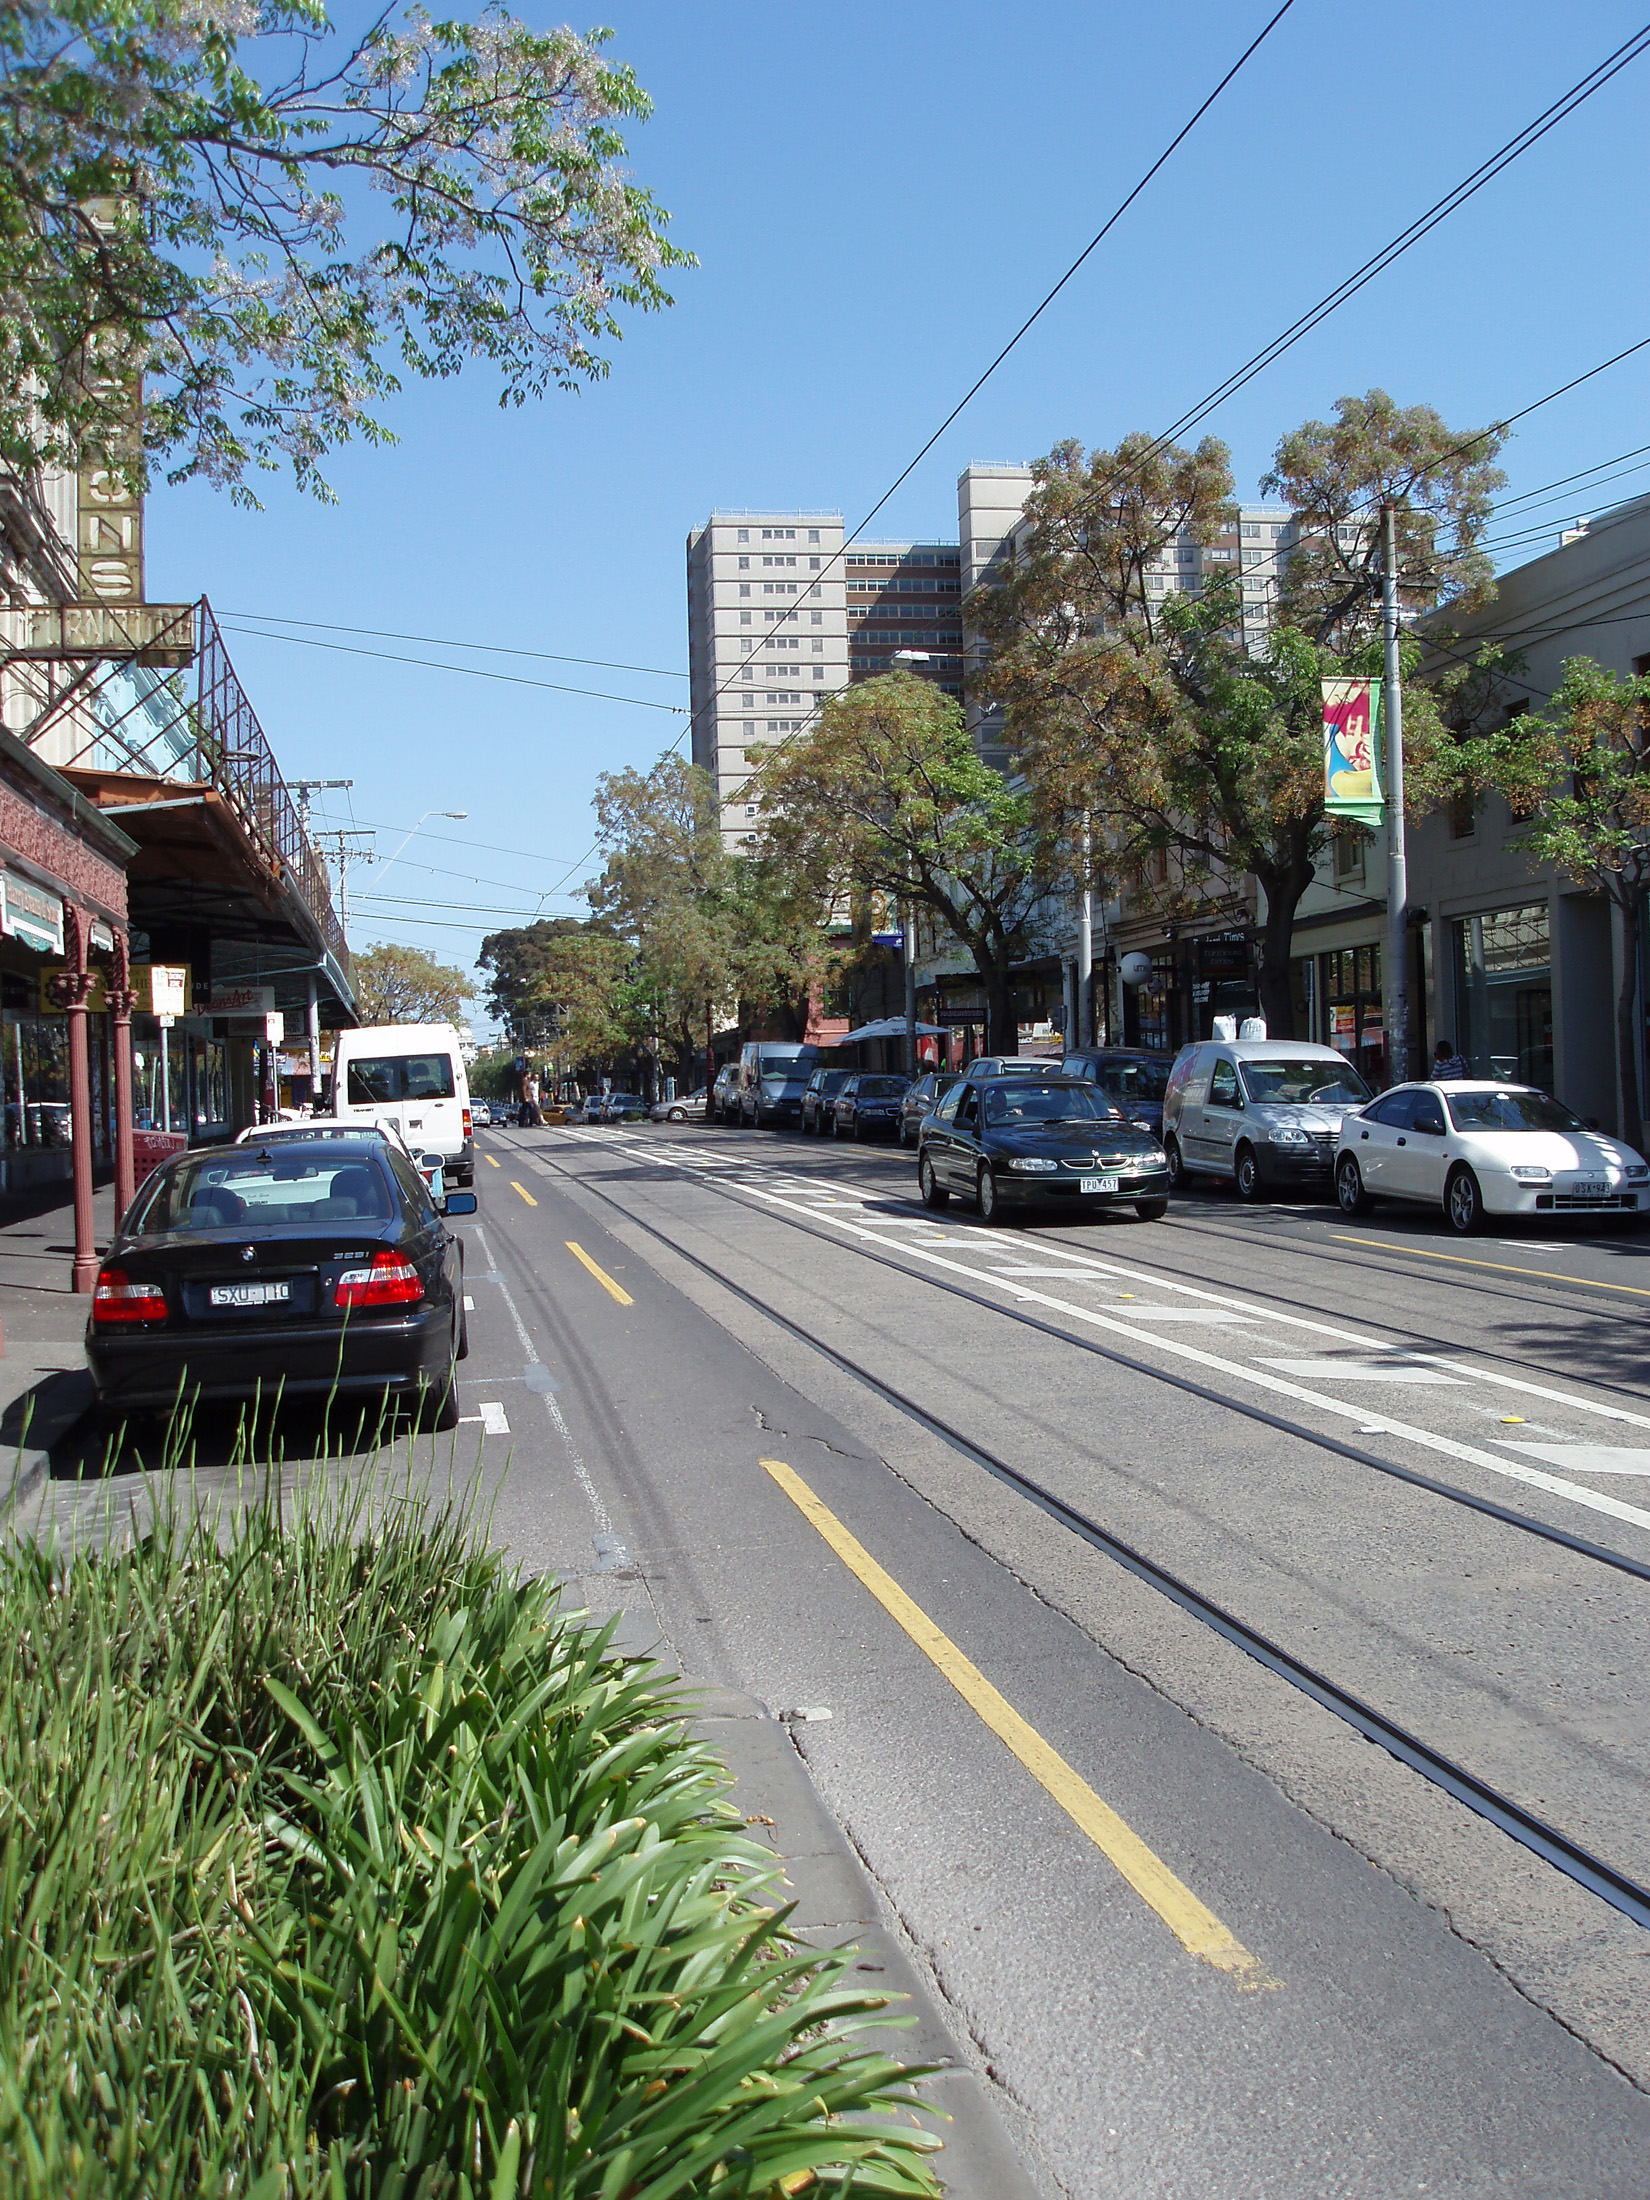 Cars at Famous Fitzroy Street in Melbourne with no Traffic During Morning Time.